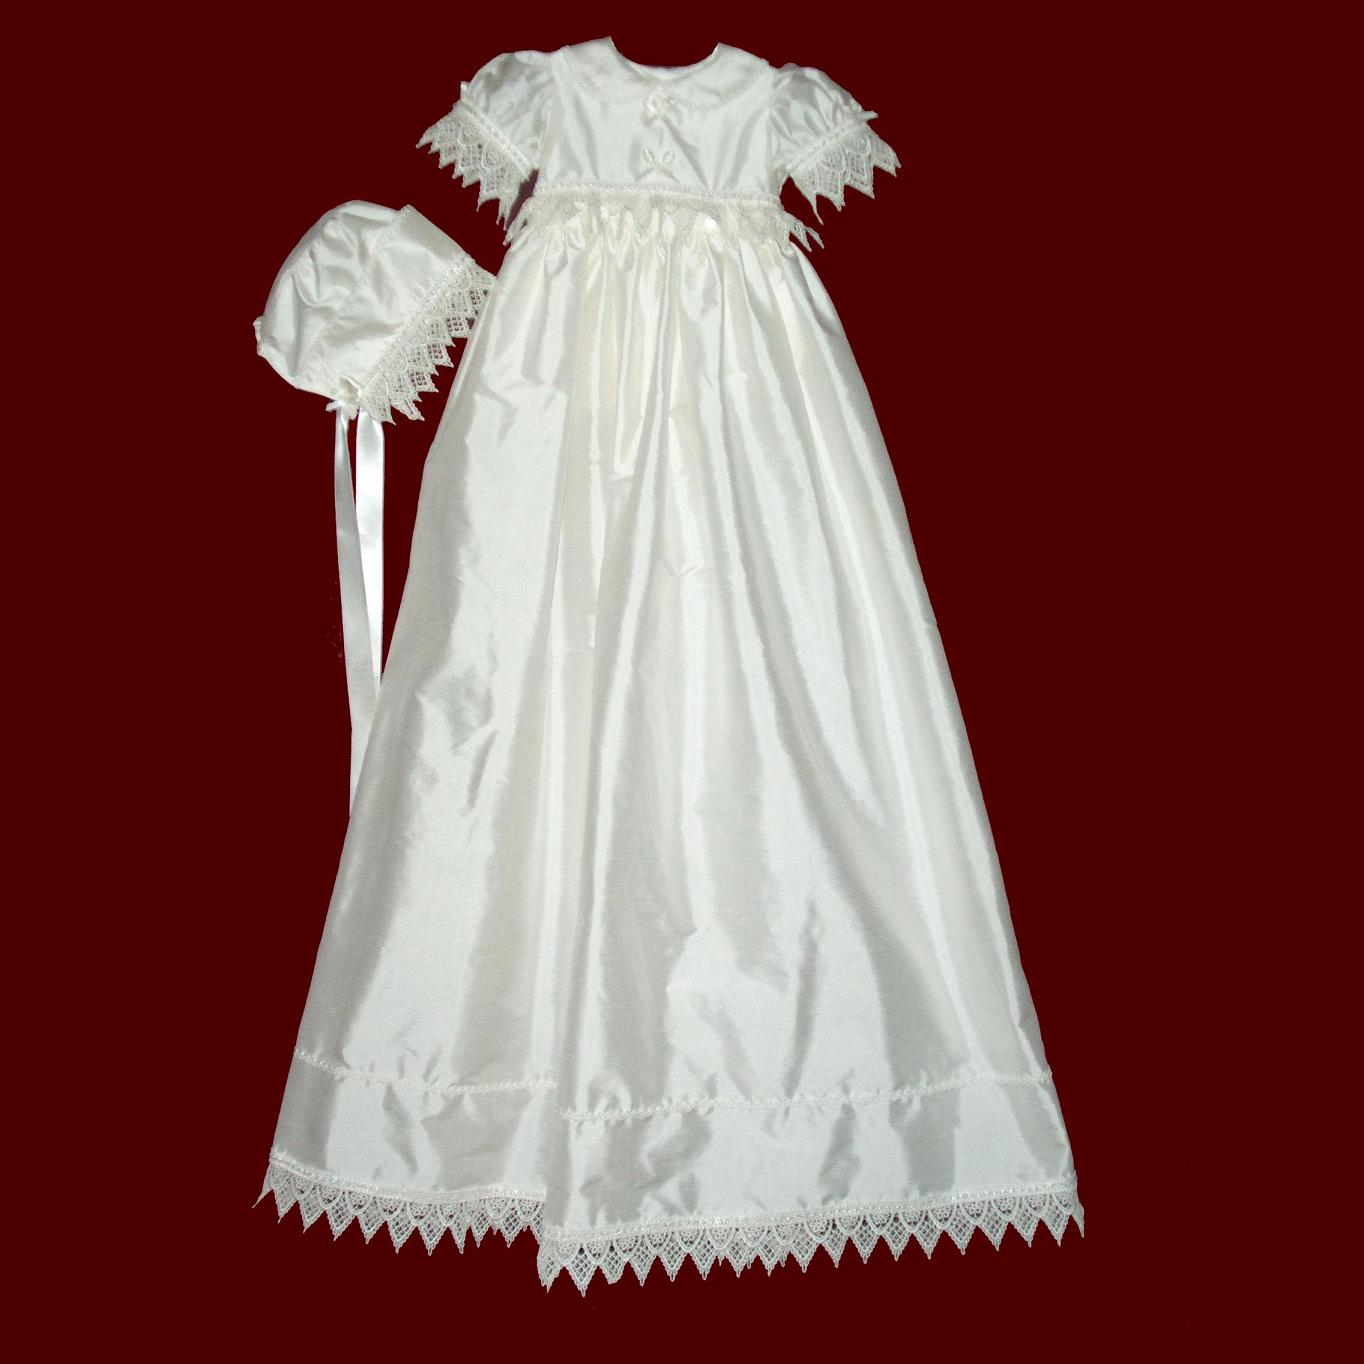 Christening Gowns From Wedding Dresses: Girls Silk Christening Ensemble With Venice Lace And